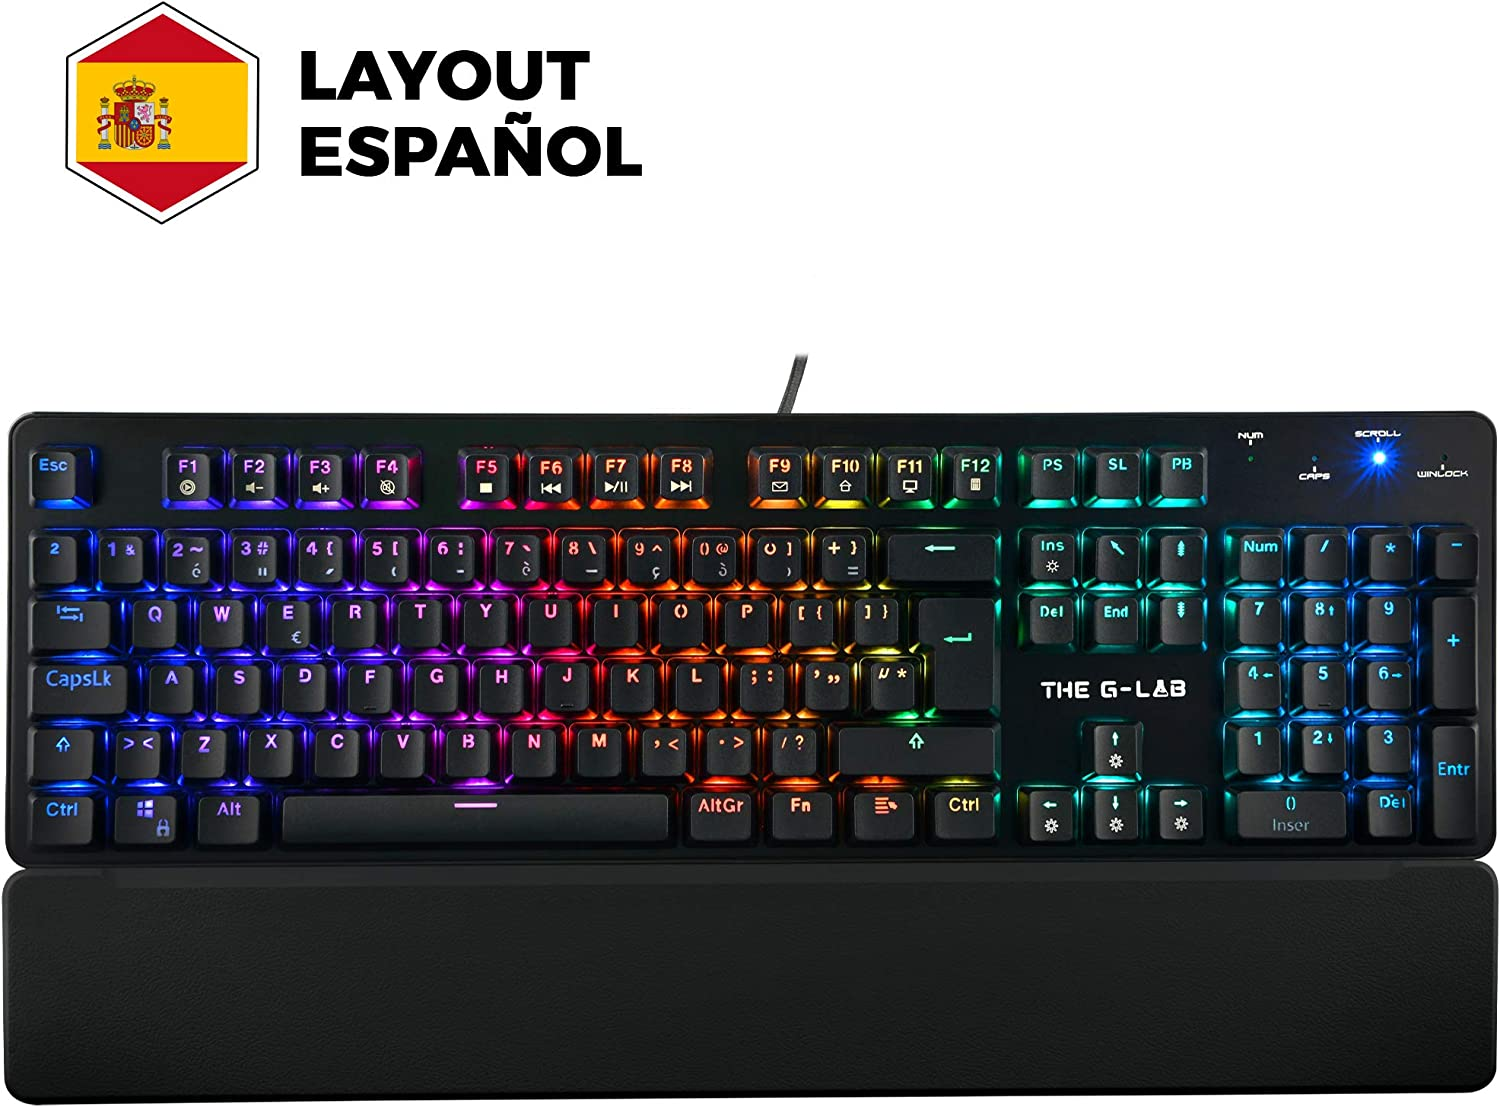 THE G-LAB Keyz Rubidium Teclado Mecánico Gaming QWERTY – Incluye Ñ – Alto Rendimiento – Teclado Mecánico Red Switch – Retroiluminación RGB, Anti-ghosting, ReposaMuñecas - PC PS4 Xbox One (Negro)